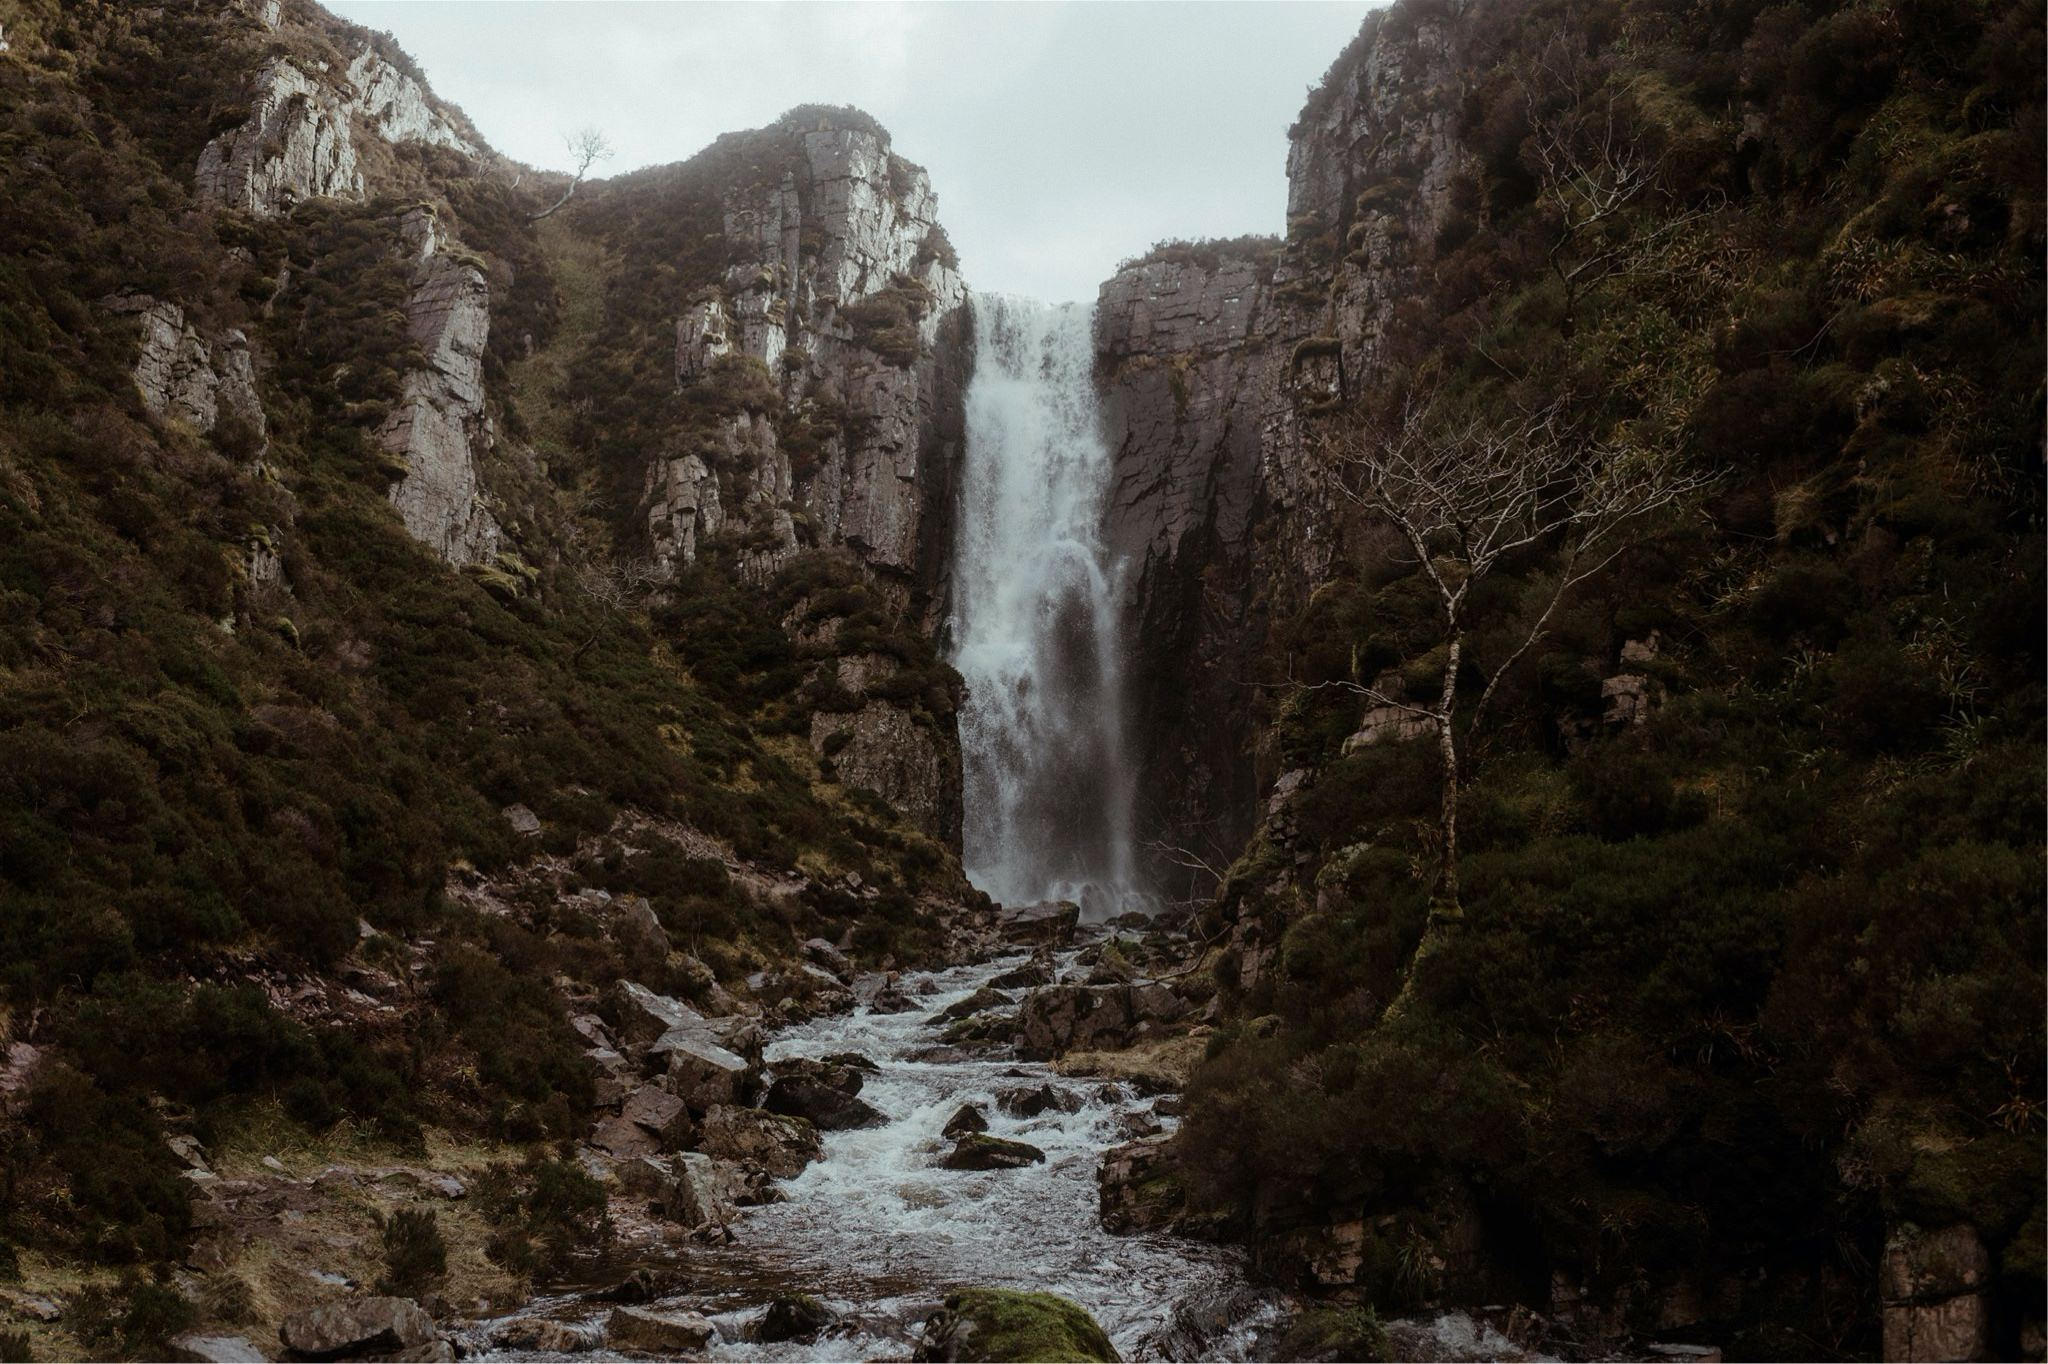 Waterfall and cliff face in Assynt, Scotland